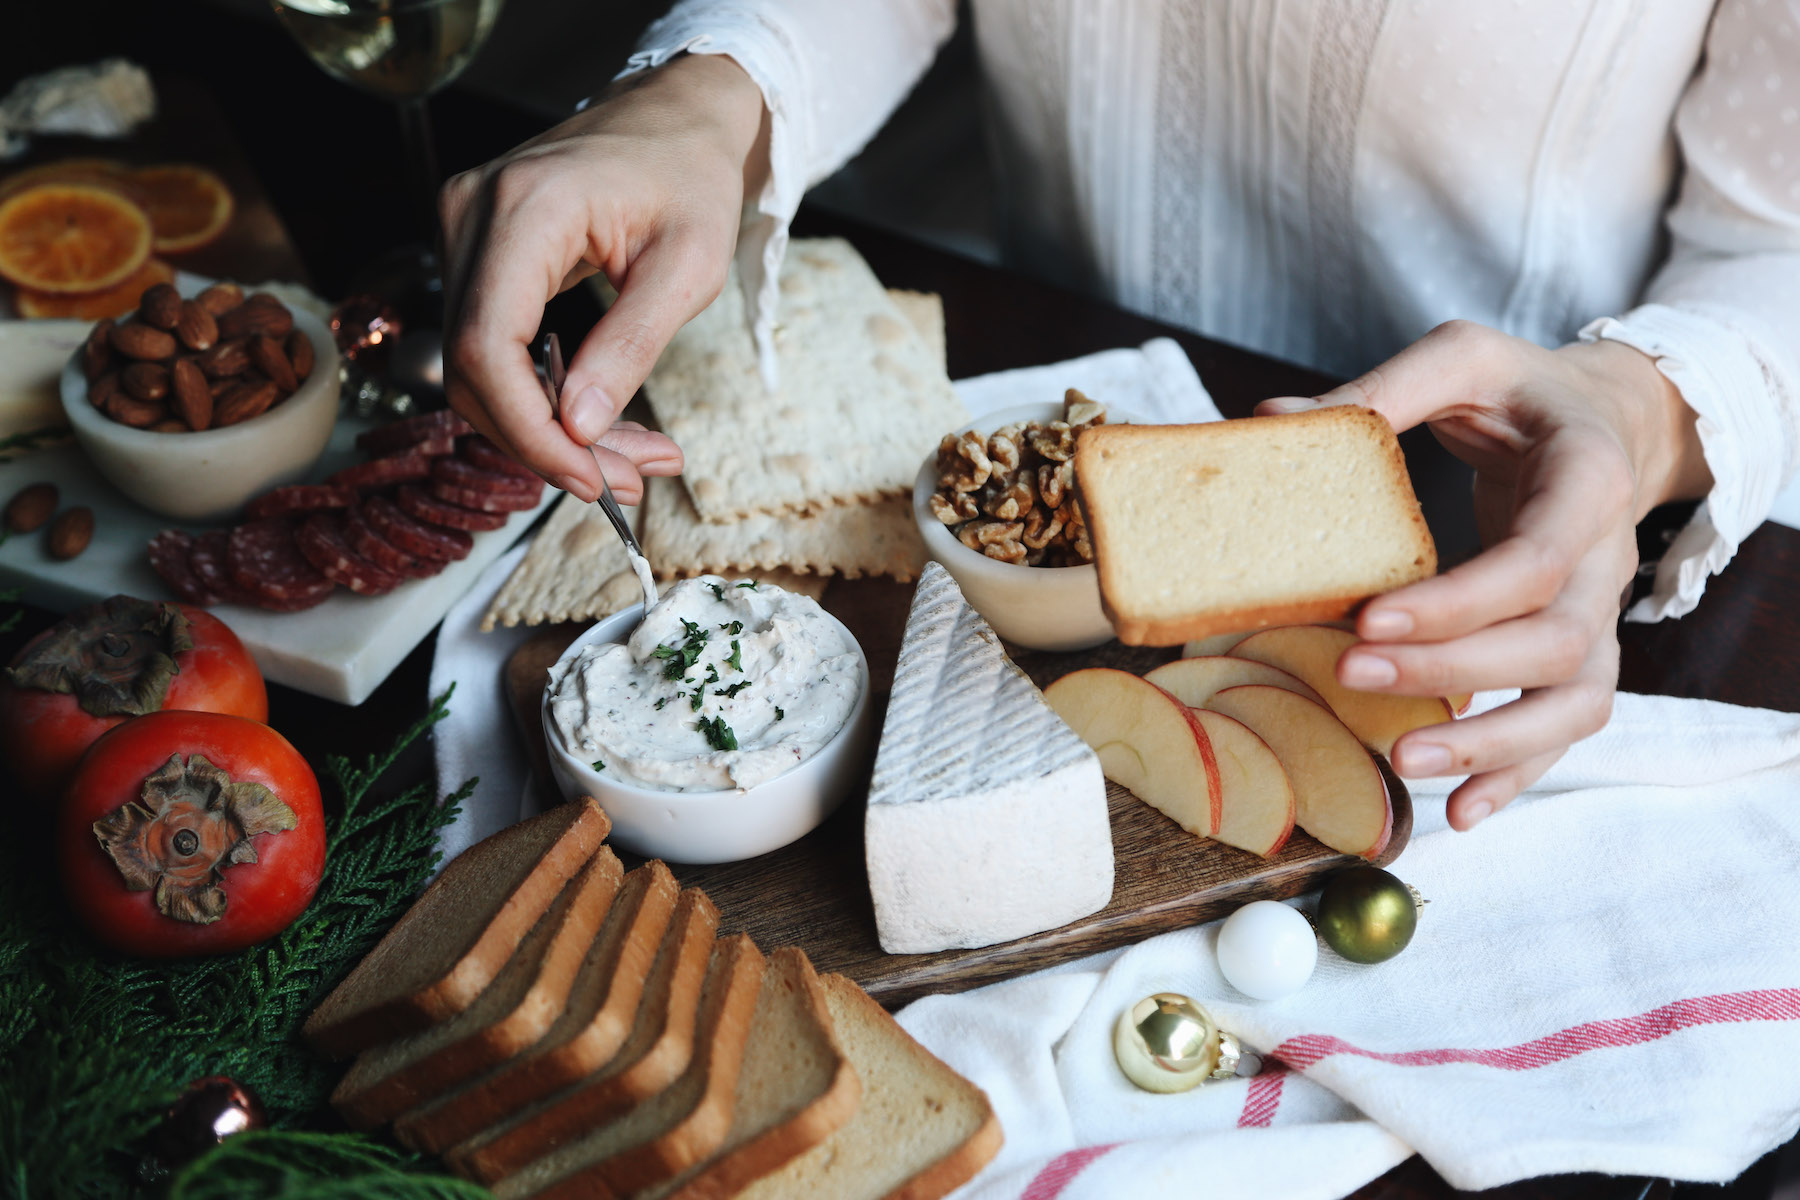 how to create a holiday cheeseboard for under 35 dollars11.jpg